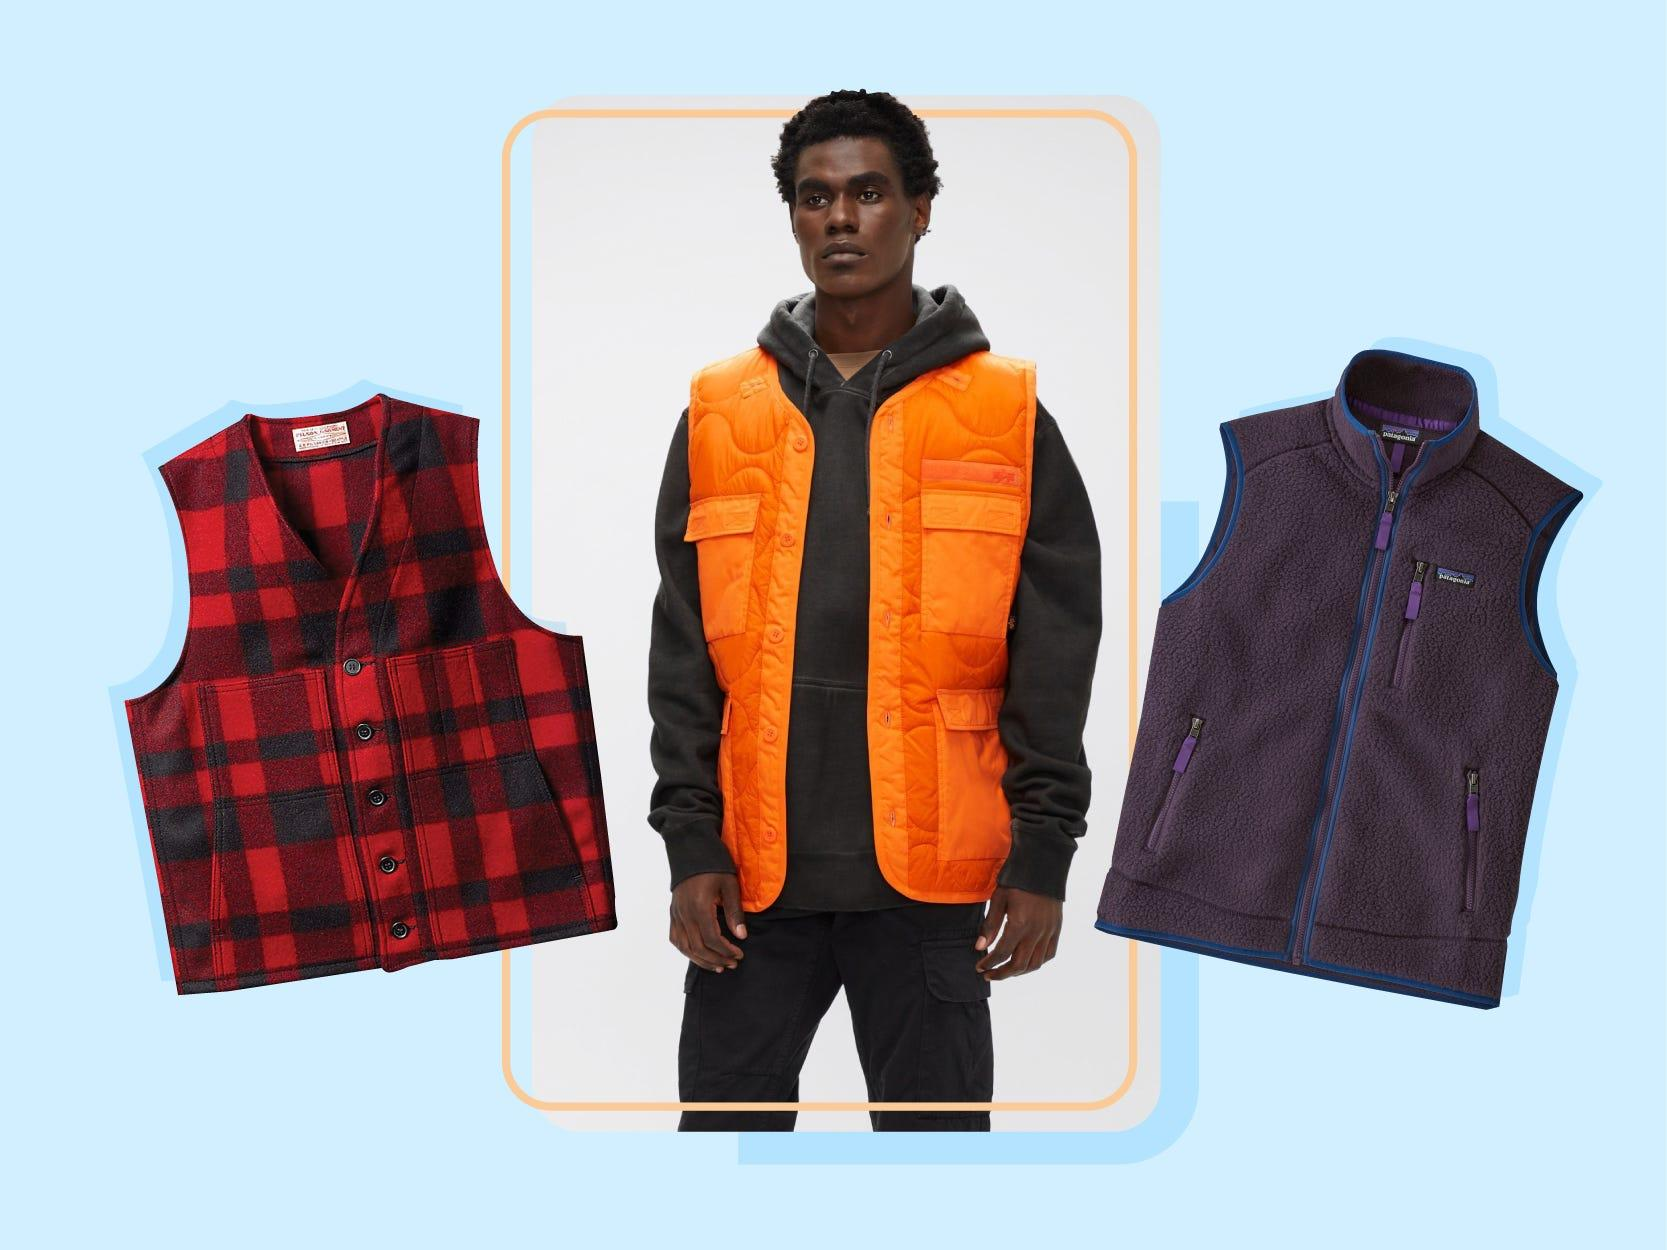 The 13 best men's vests to wear in the office or on the weekends - Insider